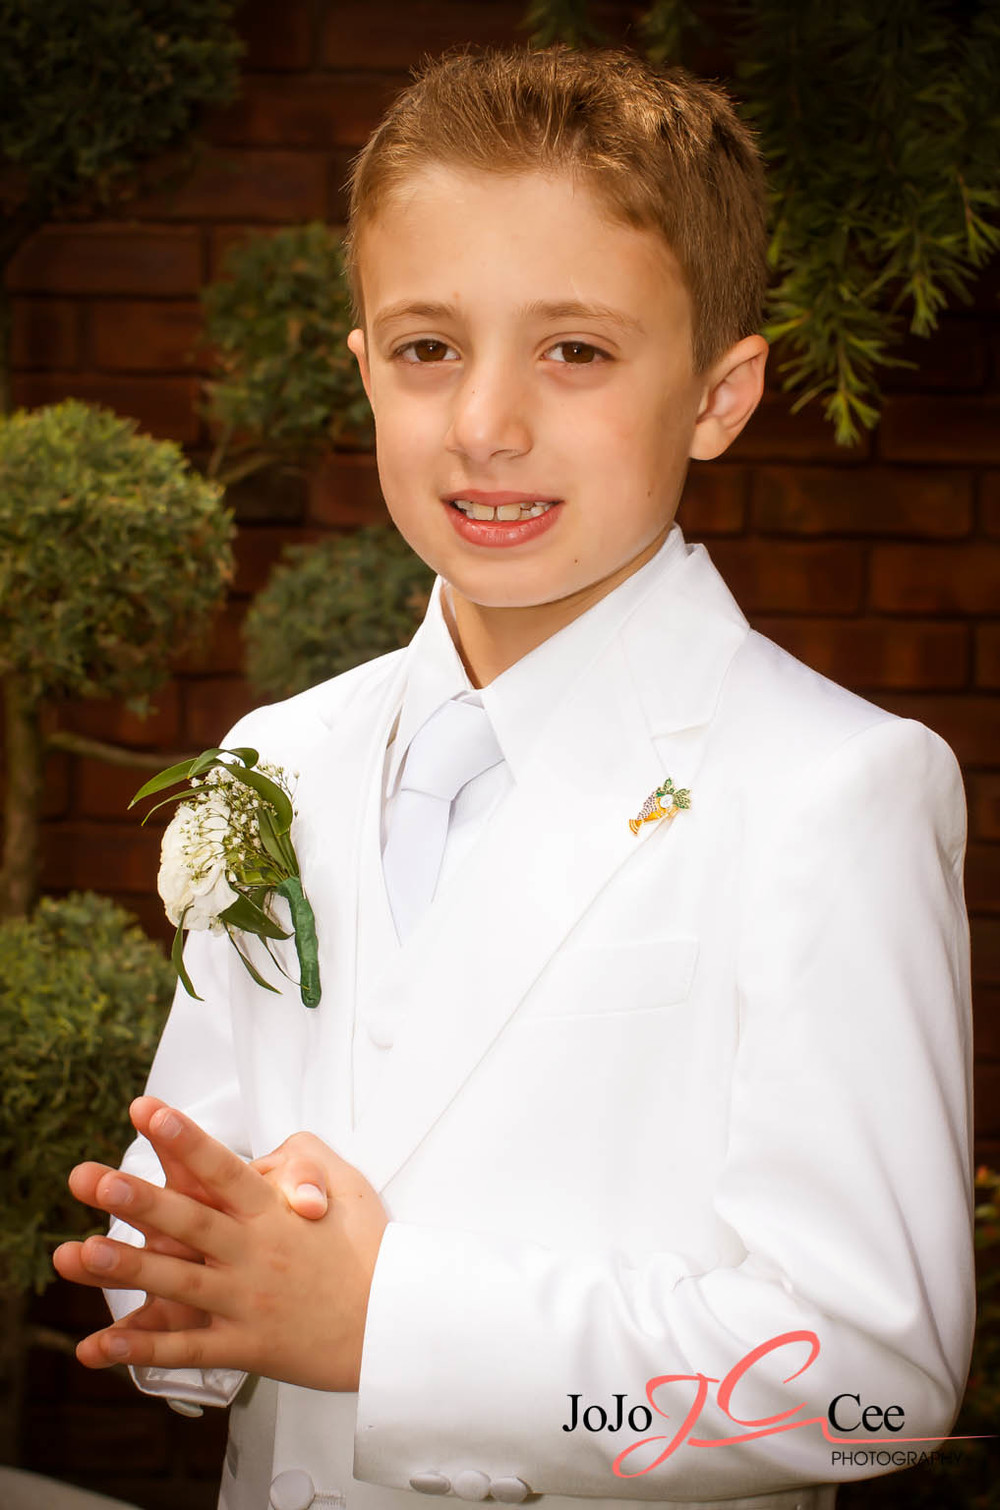 Gabriels_Communion_2014.jpg